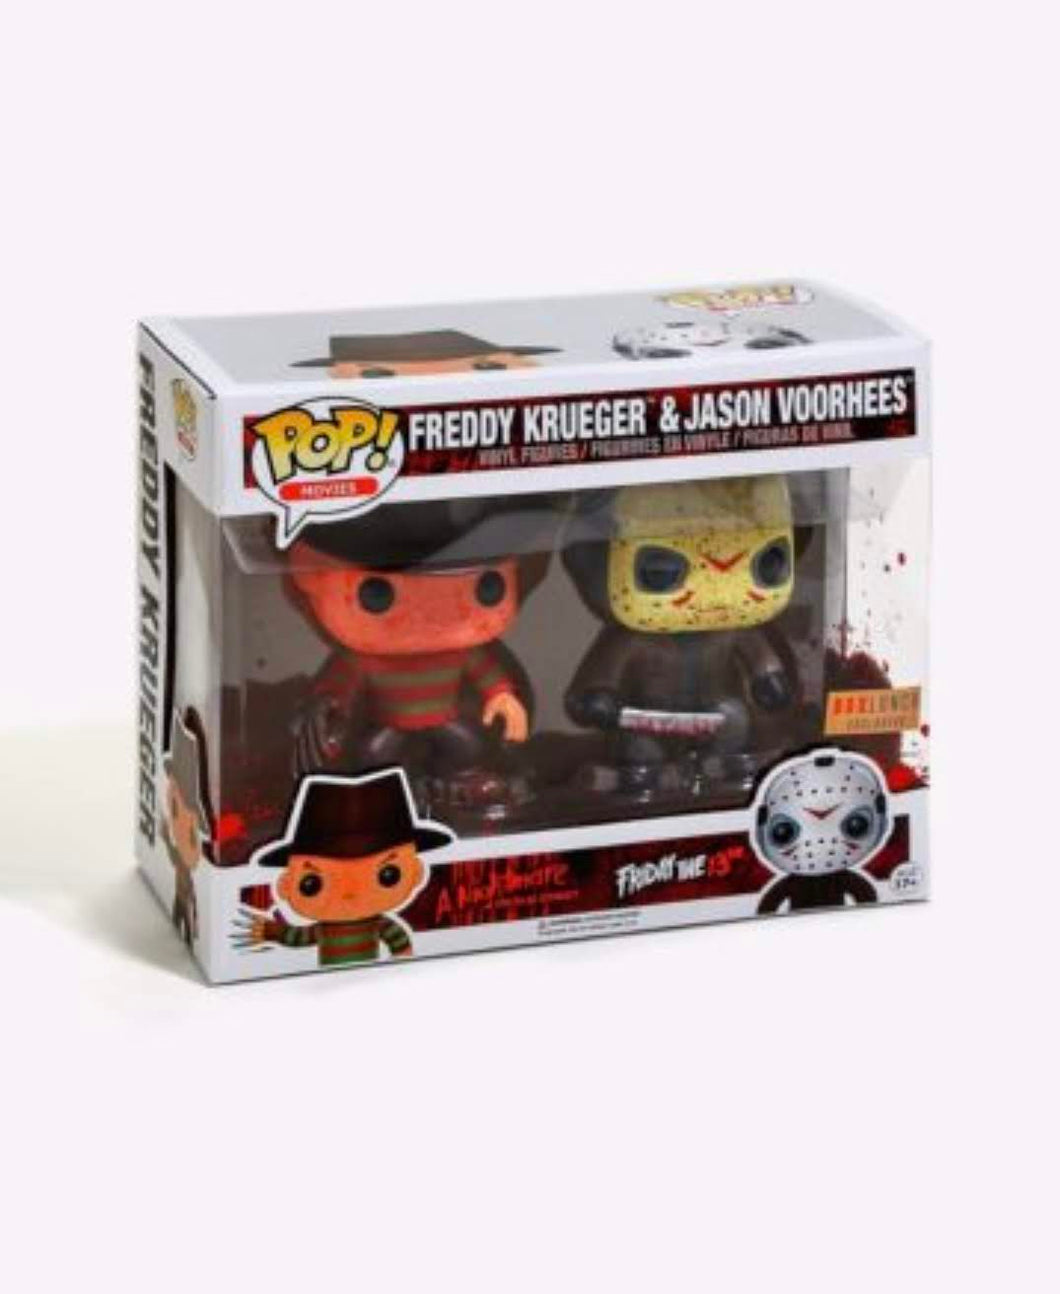 Freddy Krueger & Jason Voorhees Boxlunch Exclusive 2PK